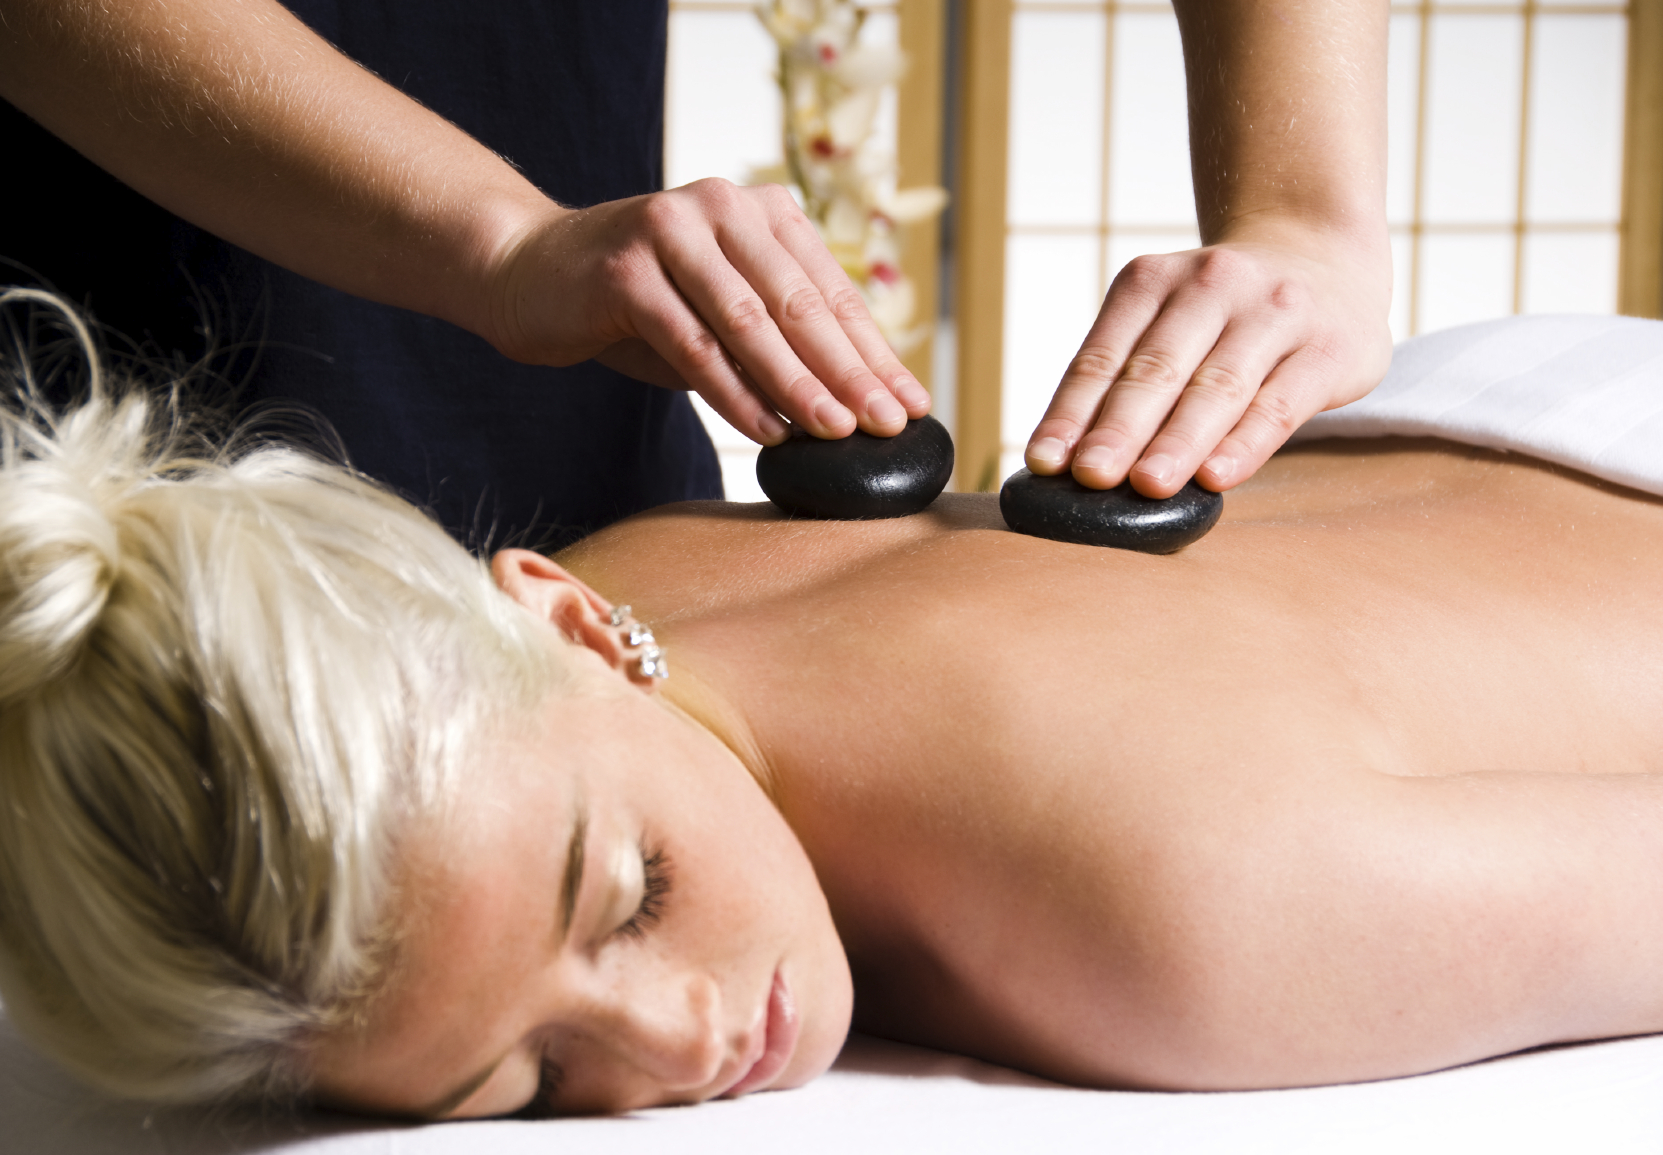 How to make hot stones for massage-7809